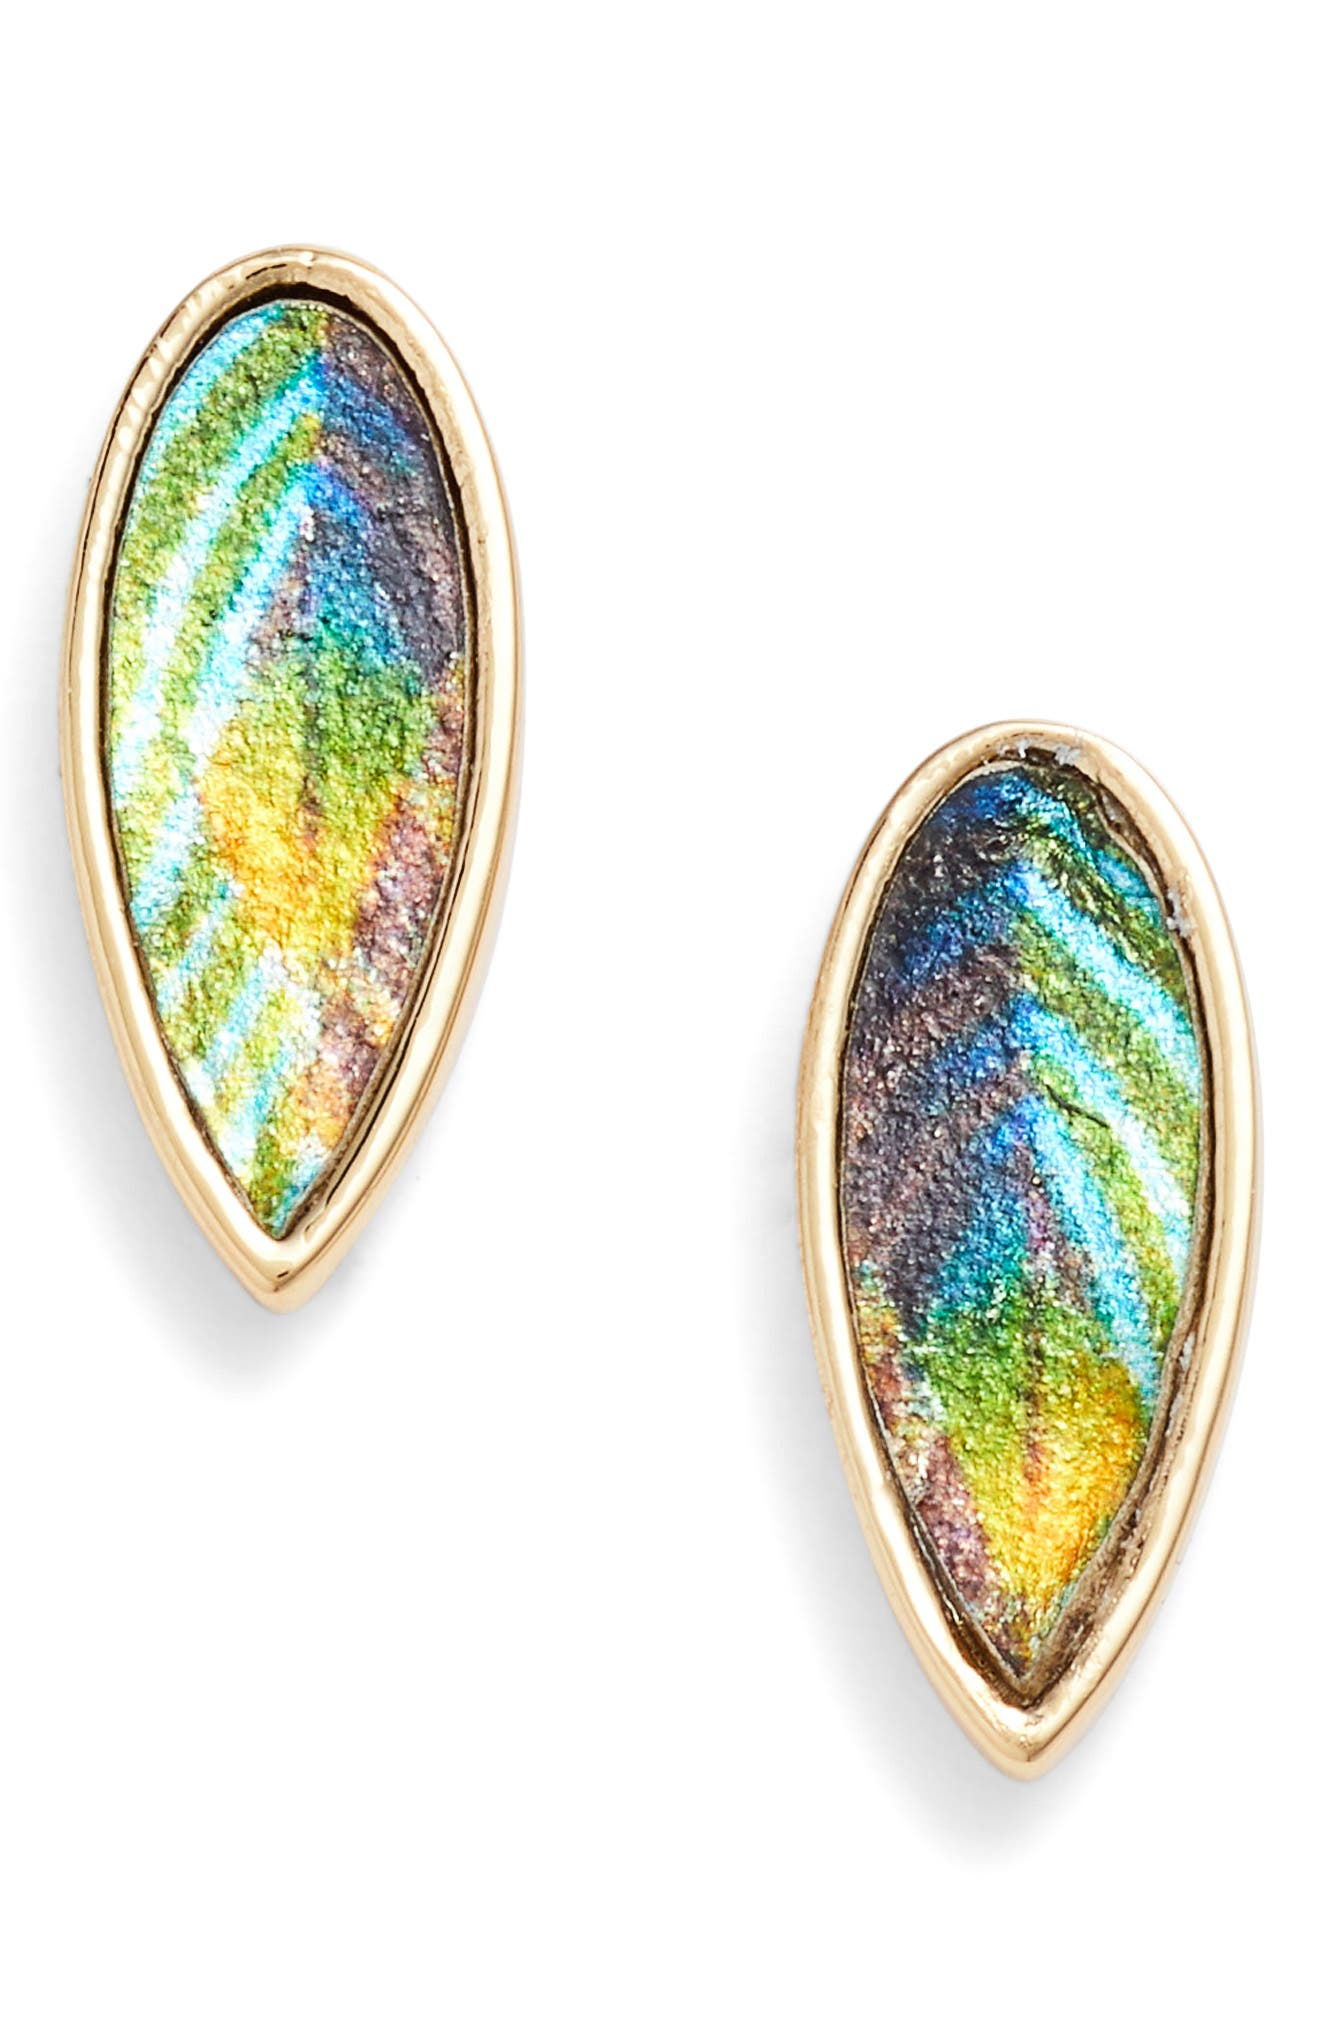 Metallic Leather Leaf Stud Earrings,                             Main thumbnail 1, color,                             710